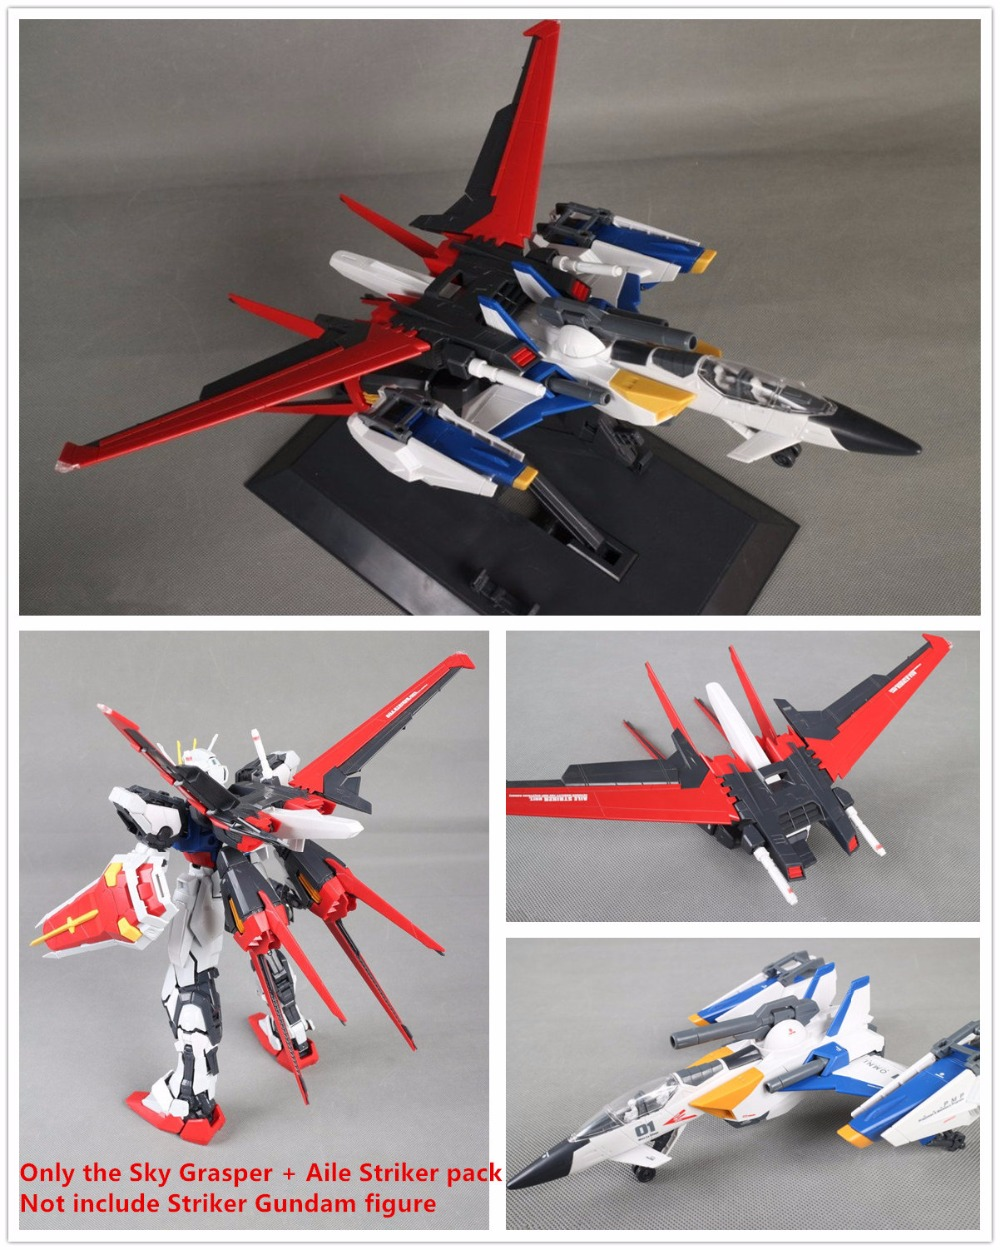 Daban PG FX-550 Sky Grasper + Aile Striker pack for Bandai 1/60 GAT-X105 Striker GundamDaban PG FX-550 Sky Grasper + Aile Striker pack for Bandai 1/60 GAT-X105 Striker Gundam